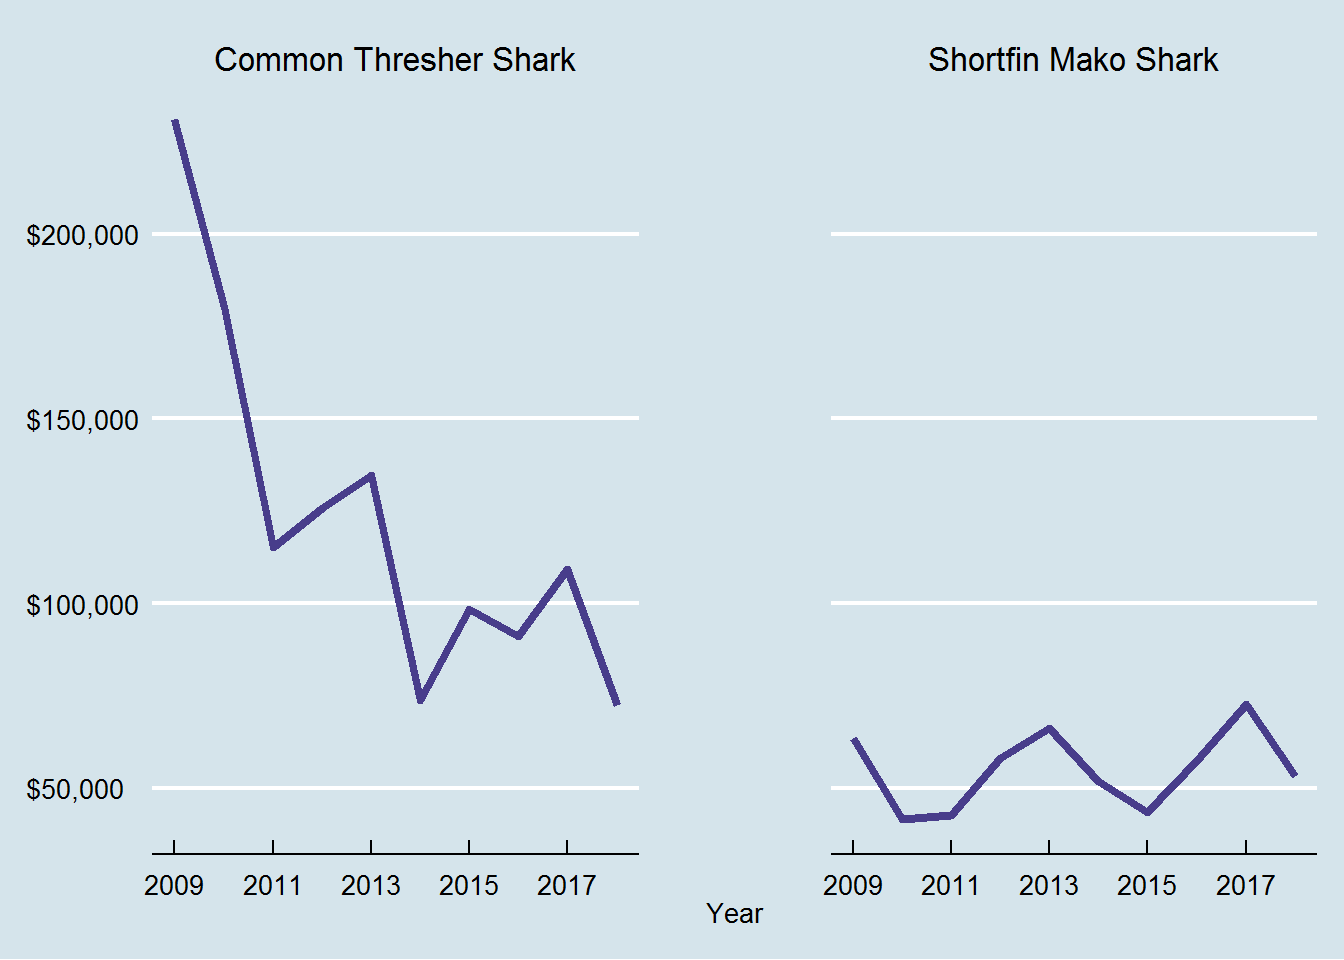 Ex-vessel revenue from west coast landings of common thresher and shortfin mako sharks, last 10 years.